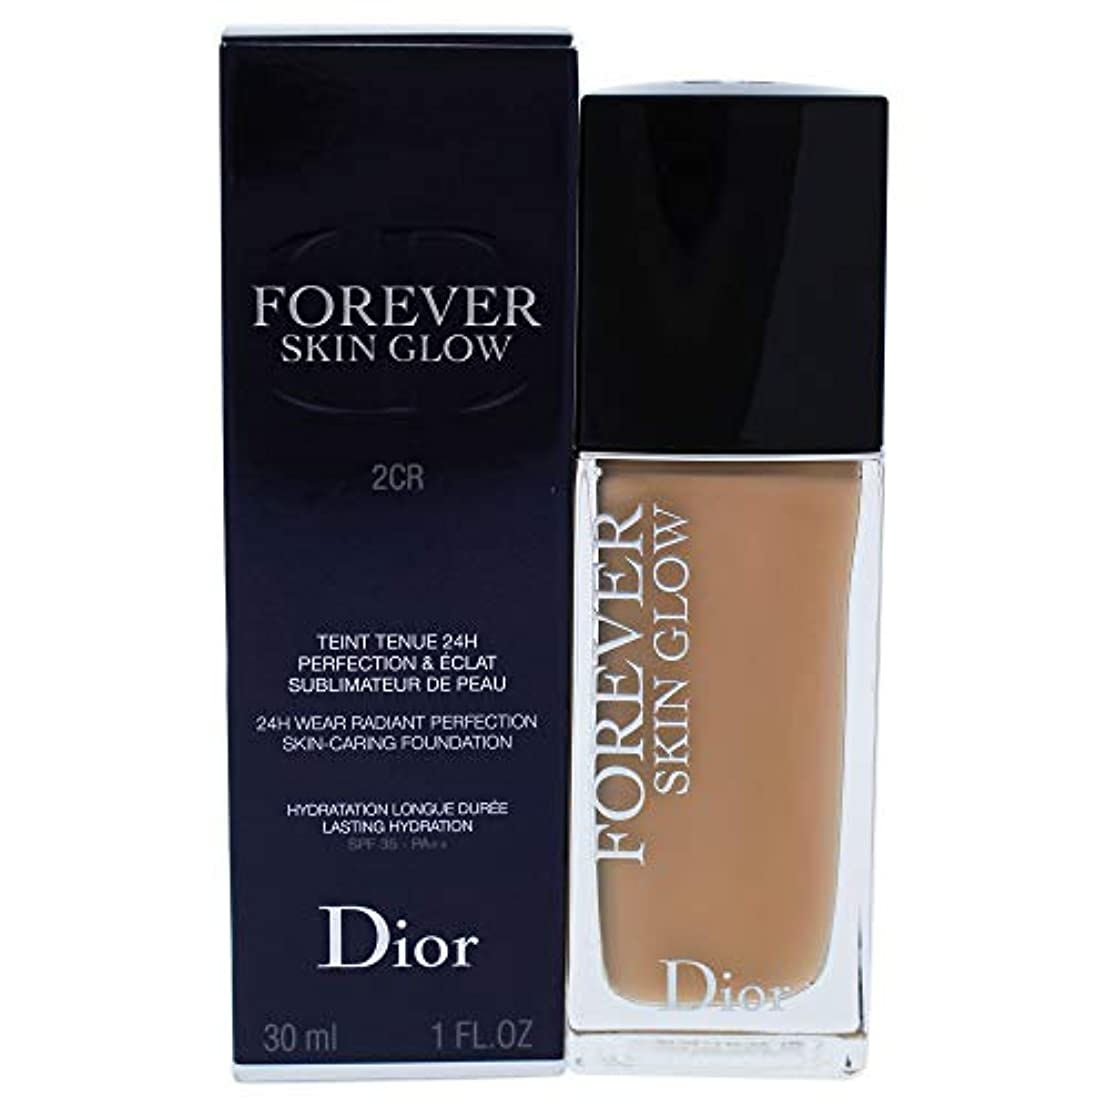 八項目忠実なクリスチャンディオール Dior Forever Skin Glow 24H Wear High Perfection Foundation SPF 35 - # 2CR (Cool Rosy) 30ml/1oz並行輸入品